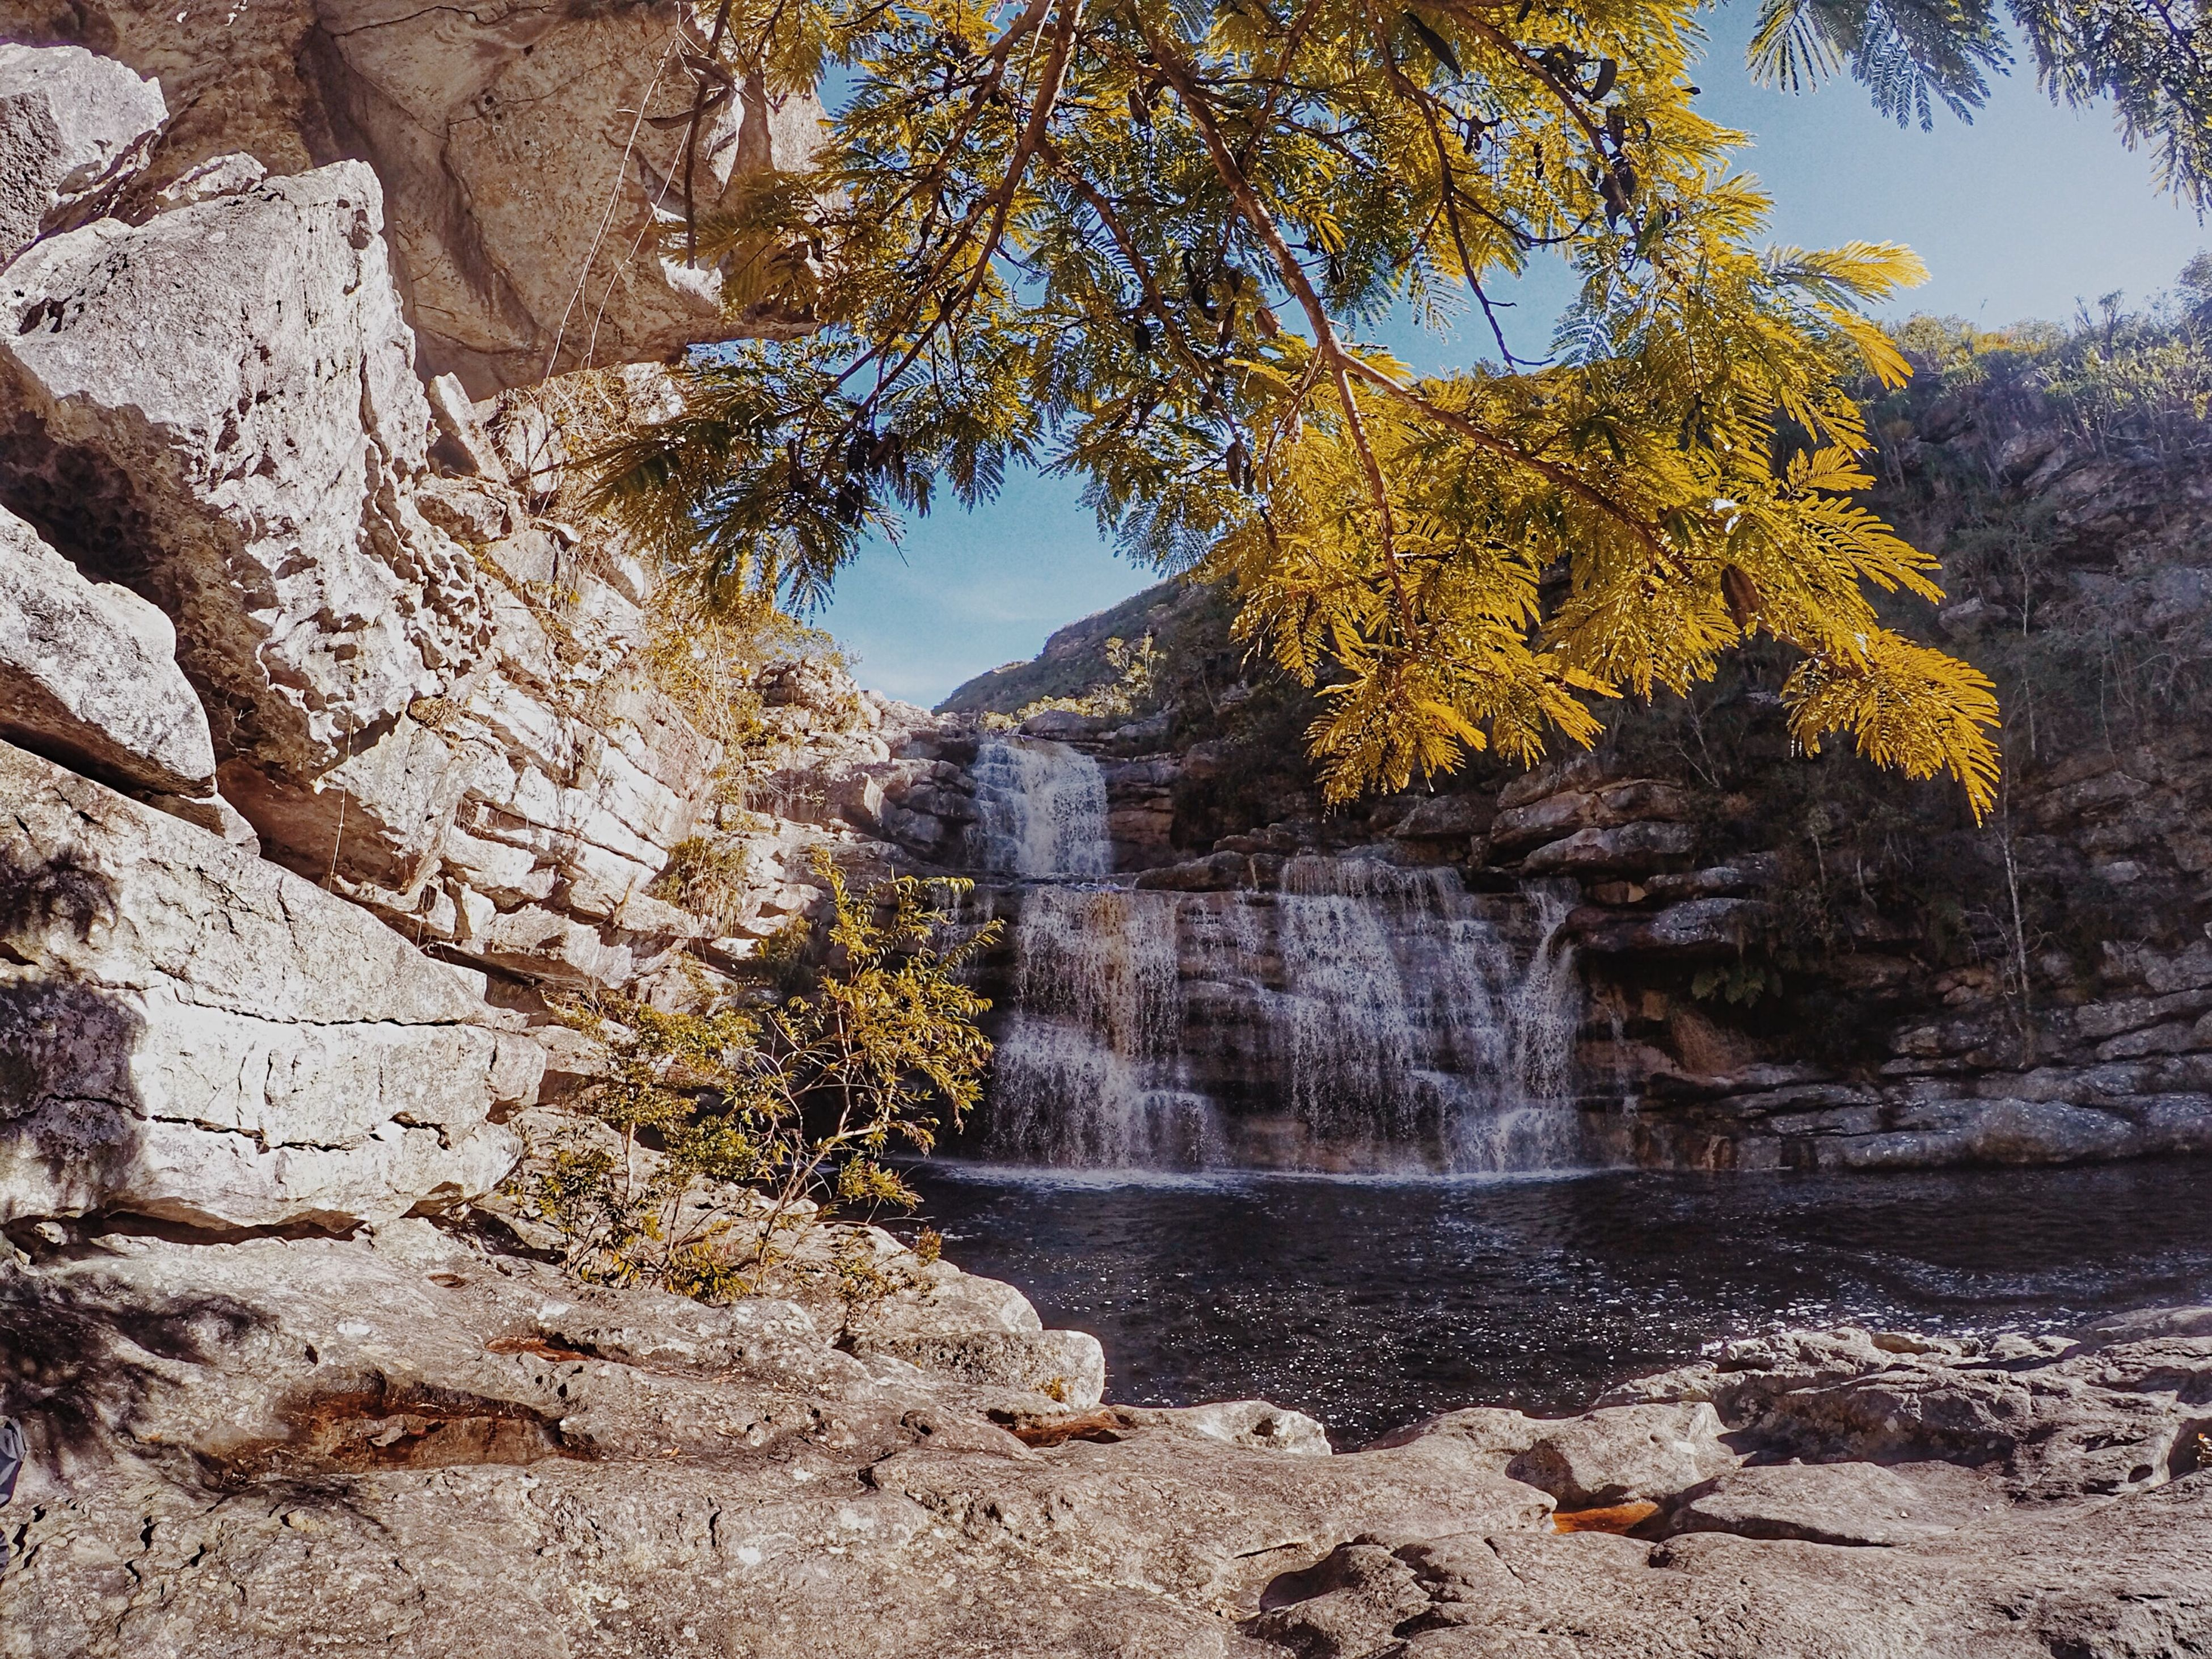 architecture, built structure, building exterior, tree, clear sky, water, rock - object, day, nature, religion, outdoors, sunlight, no people, yellow, sky, branch, low angle view, autumn, place of worship, growth